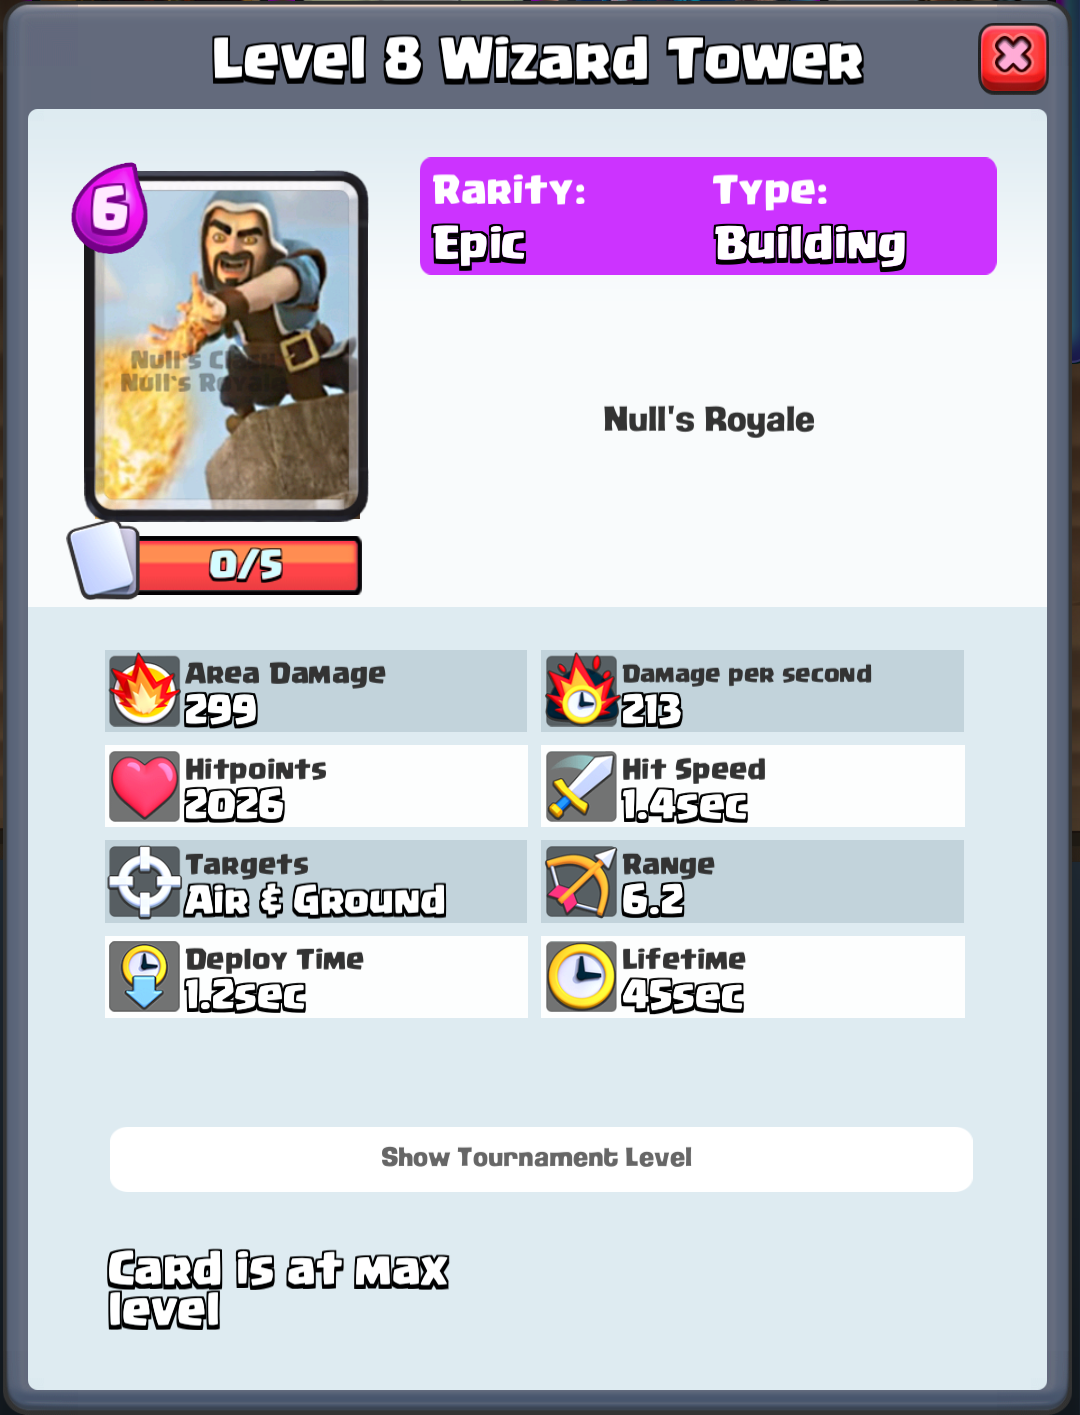 Wizard Tower - Nulls Royale